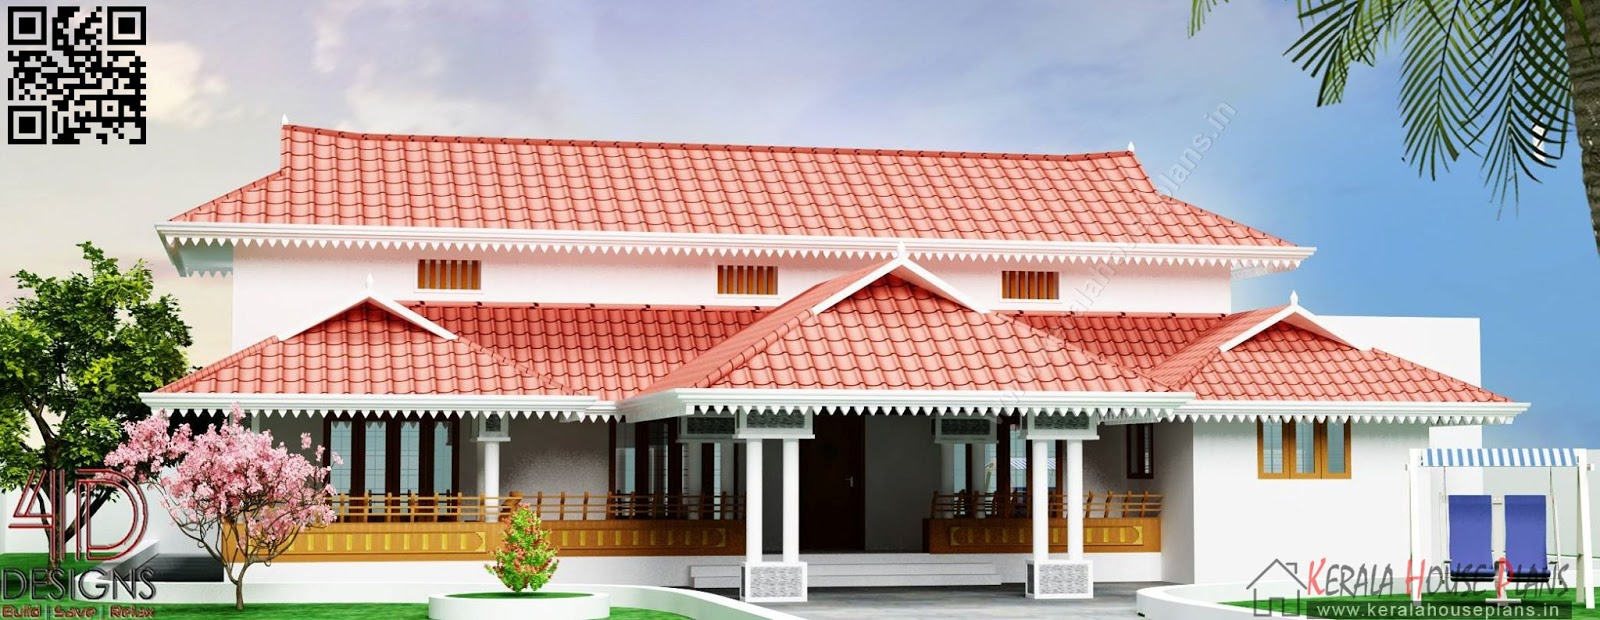 Kerala traditional home designs home photo style for Traditional house plans kerala style